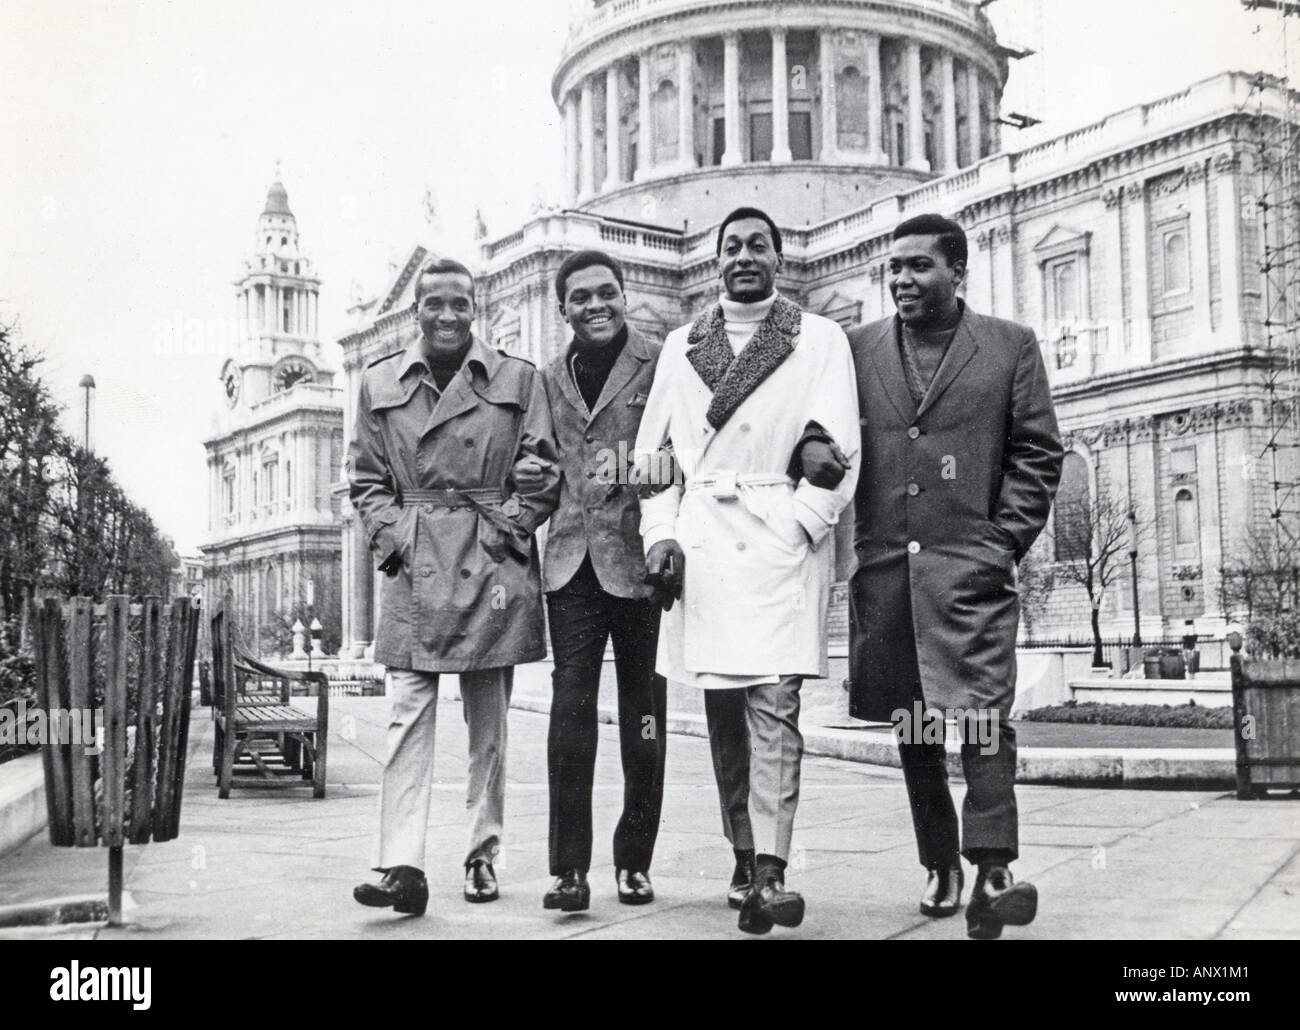 FOUR TOPS US group ouside St Paul s London in 1966 - Stock Image